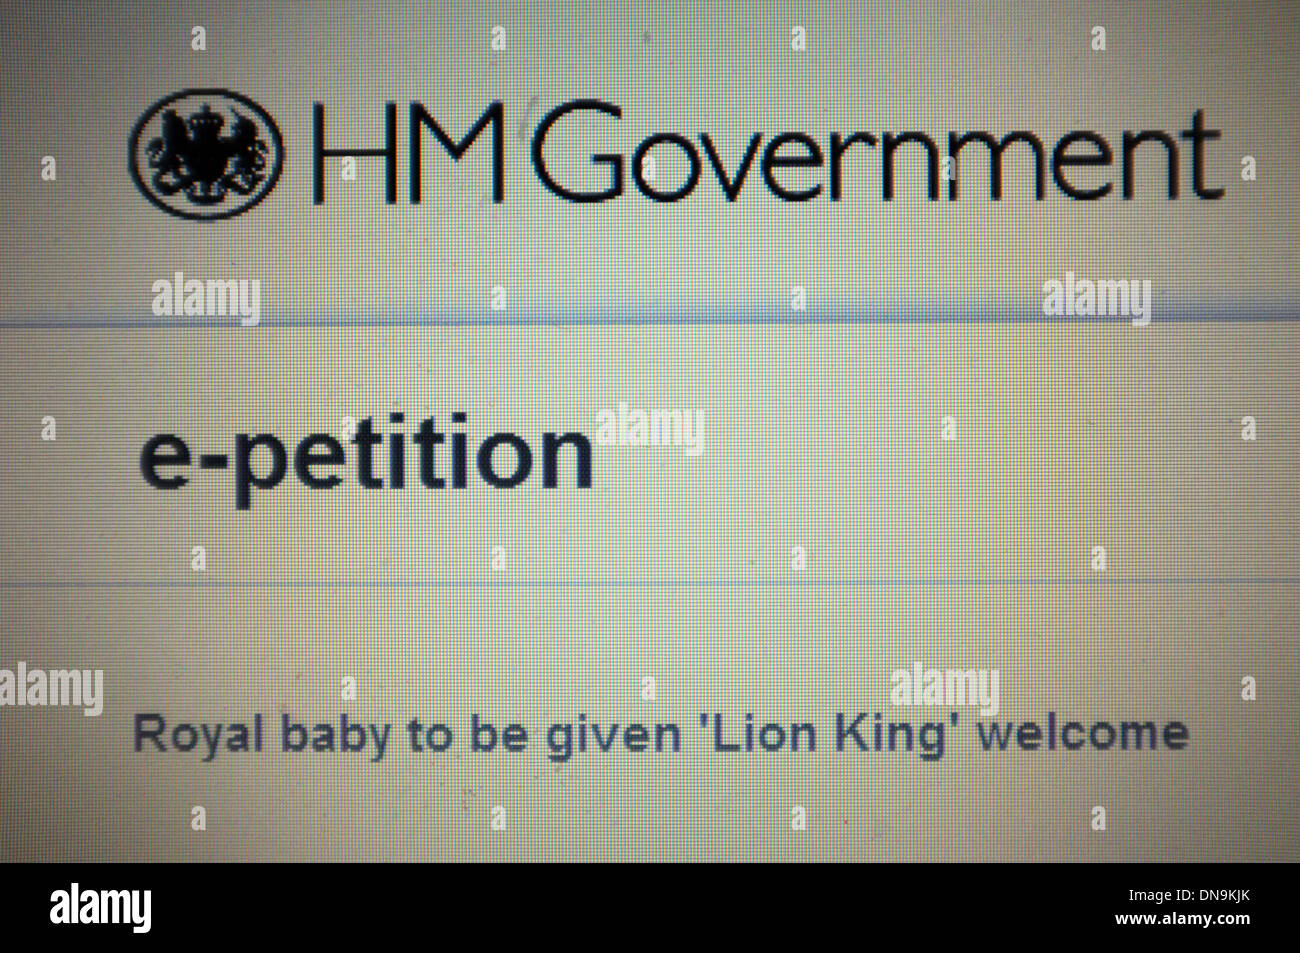 An e-petition on the British Government website calling for the new Royal baby to be given a Lion King welcome. - Stock Image